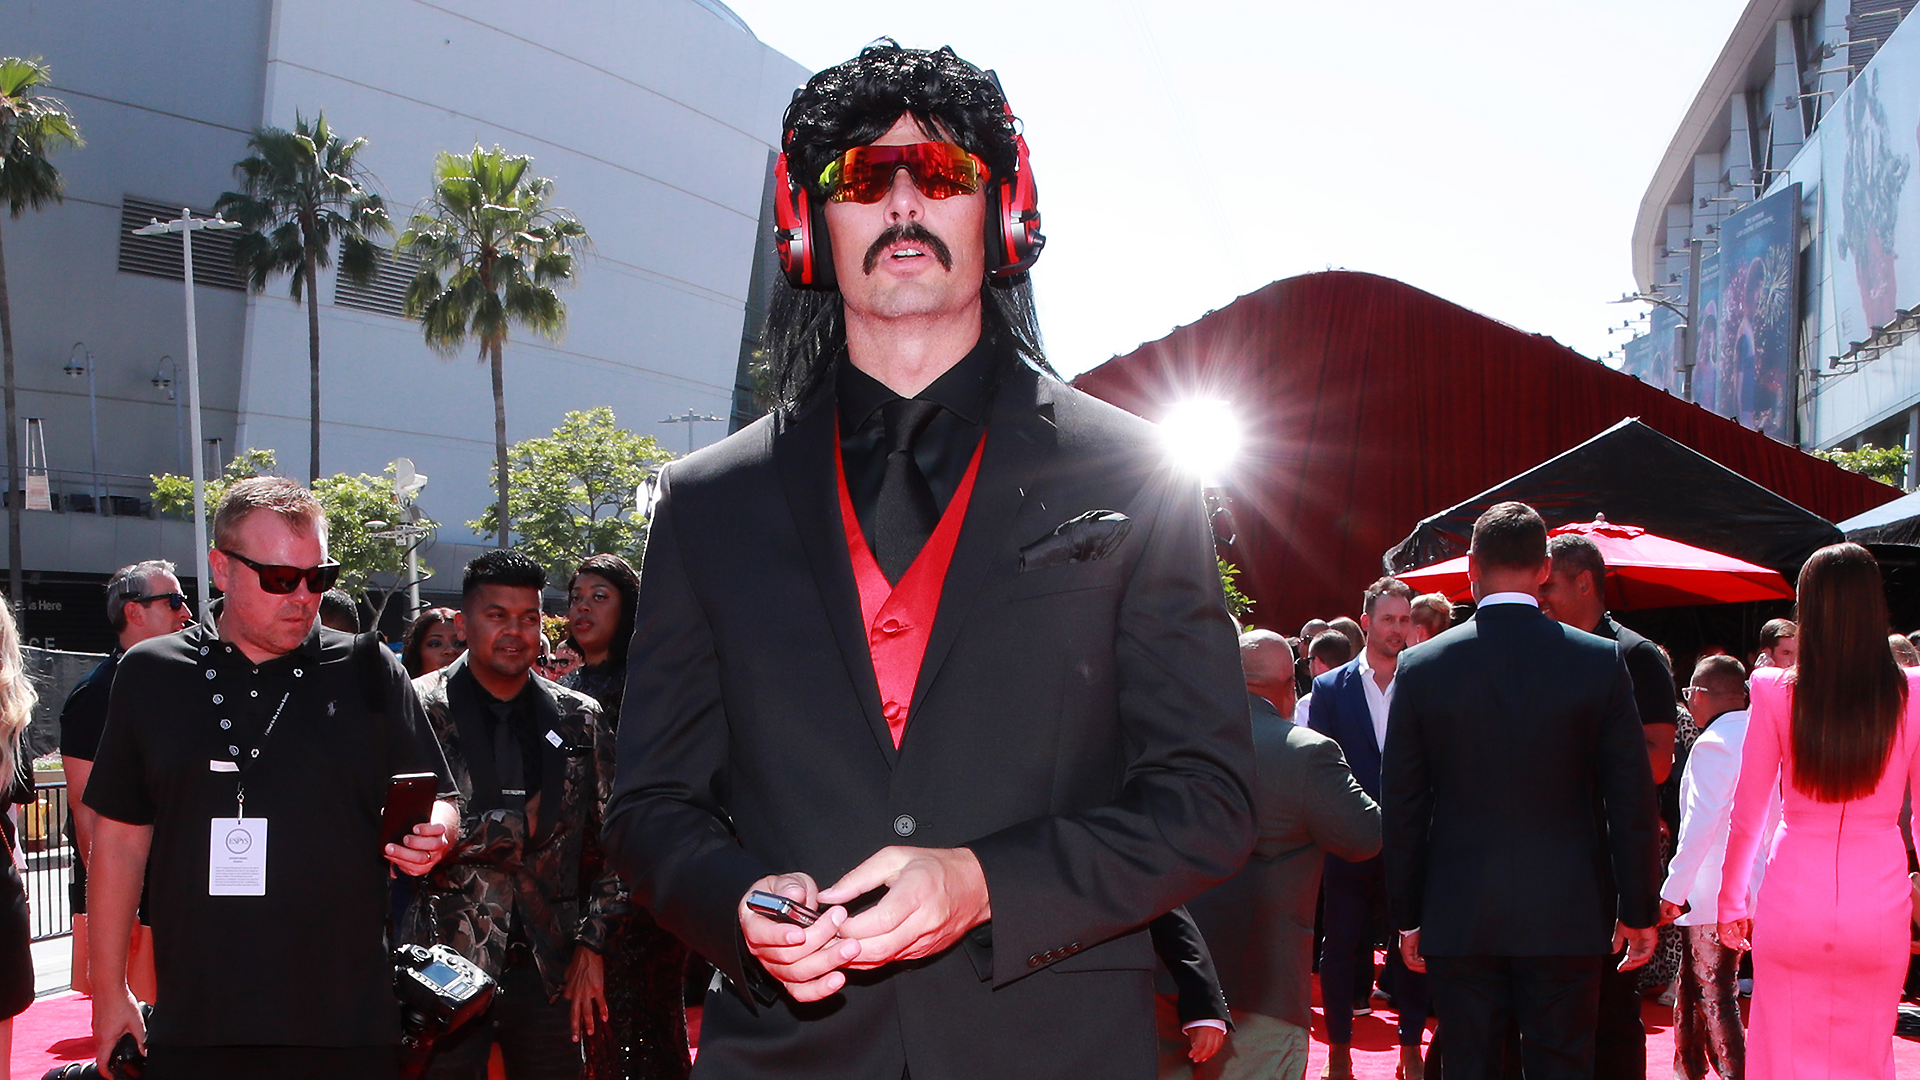 Why is Dr Disrespect banned on Twitch? Here's what we know 1